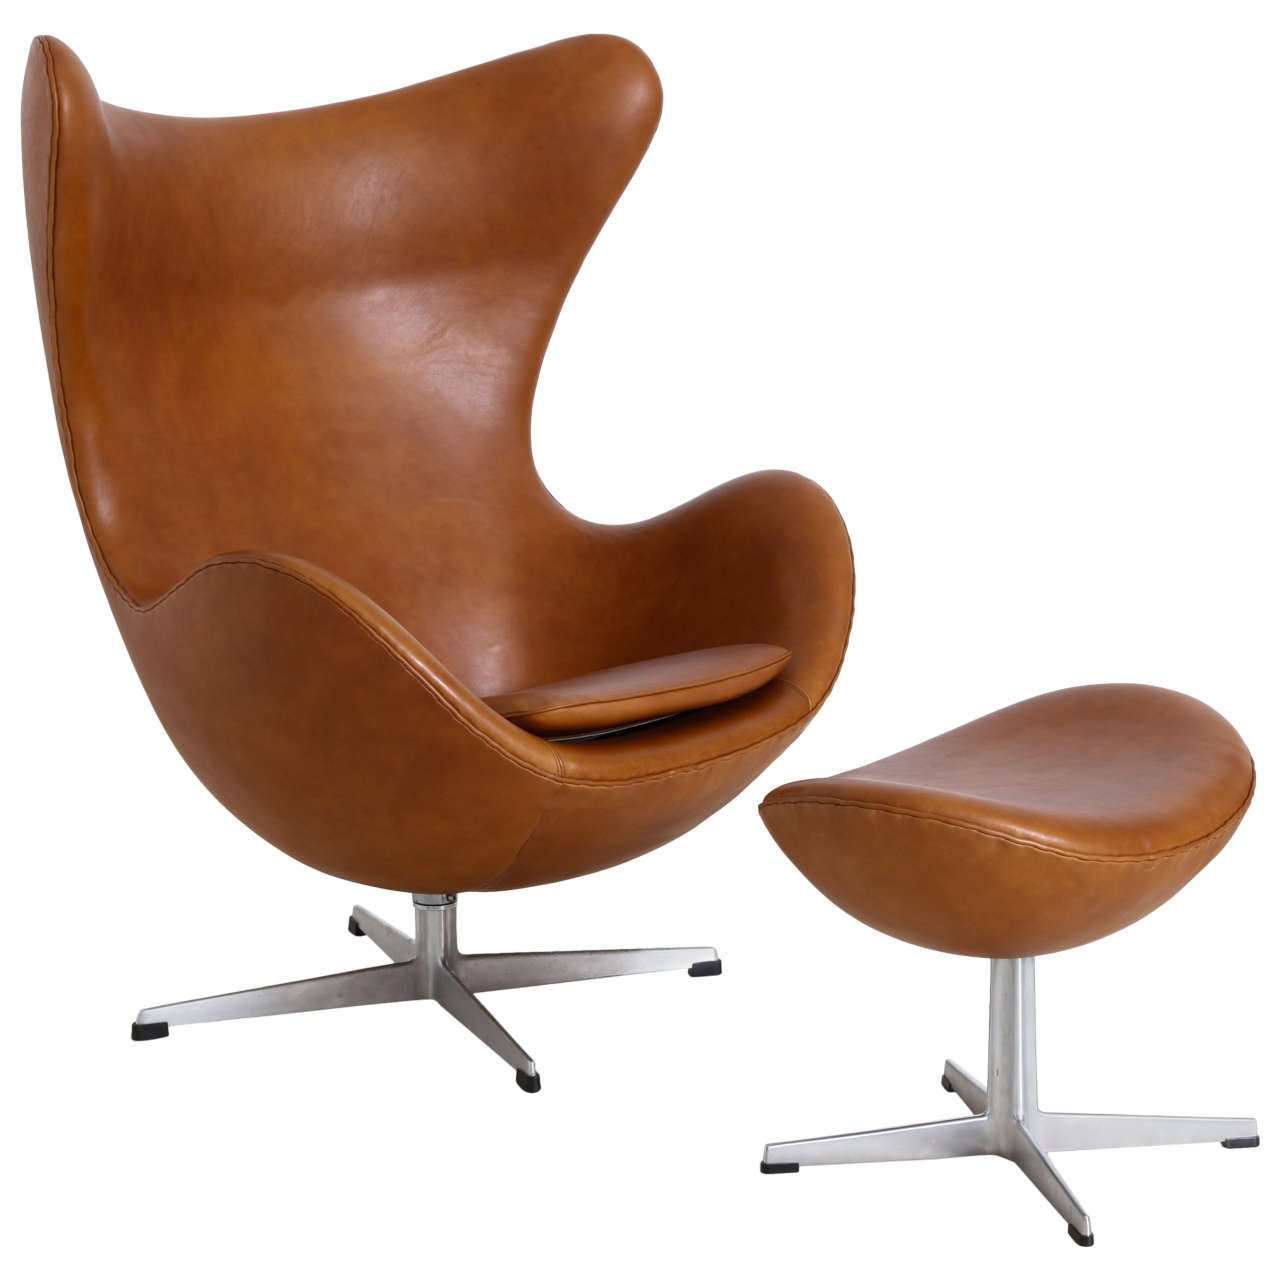 Arne jacobsen egg chair with ottoman at 1stdibs for Chaise arne jacobsen